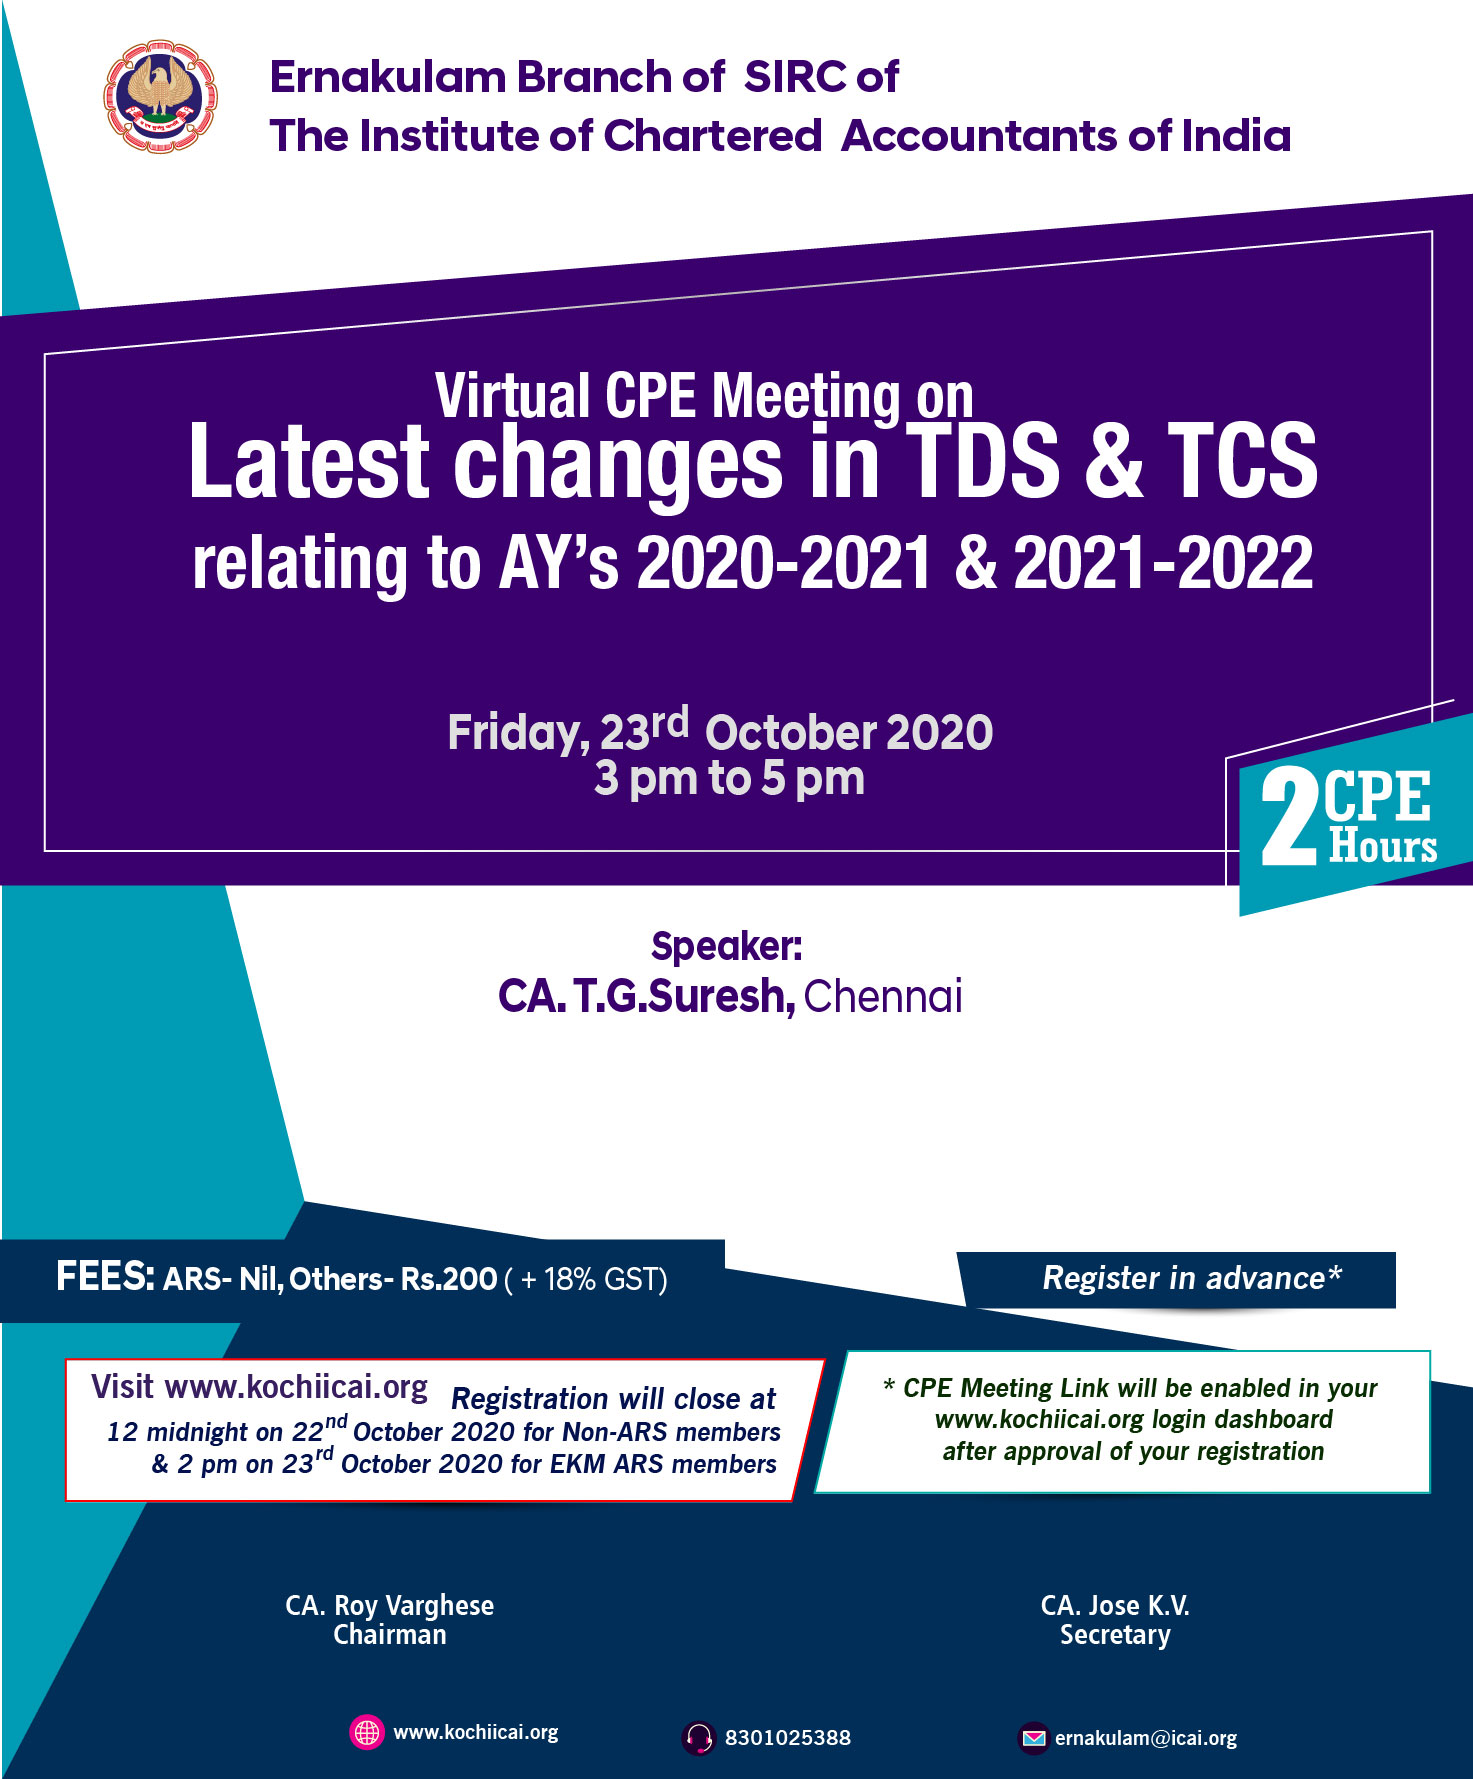 Virtual CPE Meeting on Latest changes in TDS & TCS relating to AY's 2020-2021 & 2021-2022